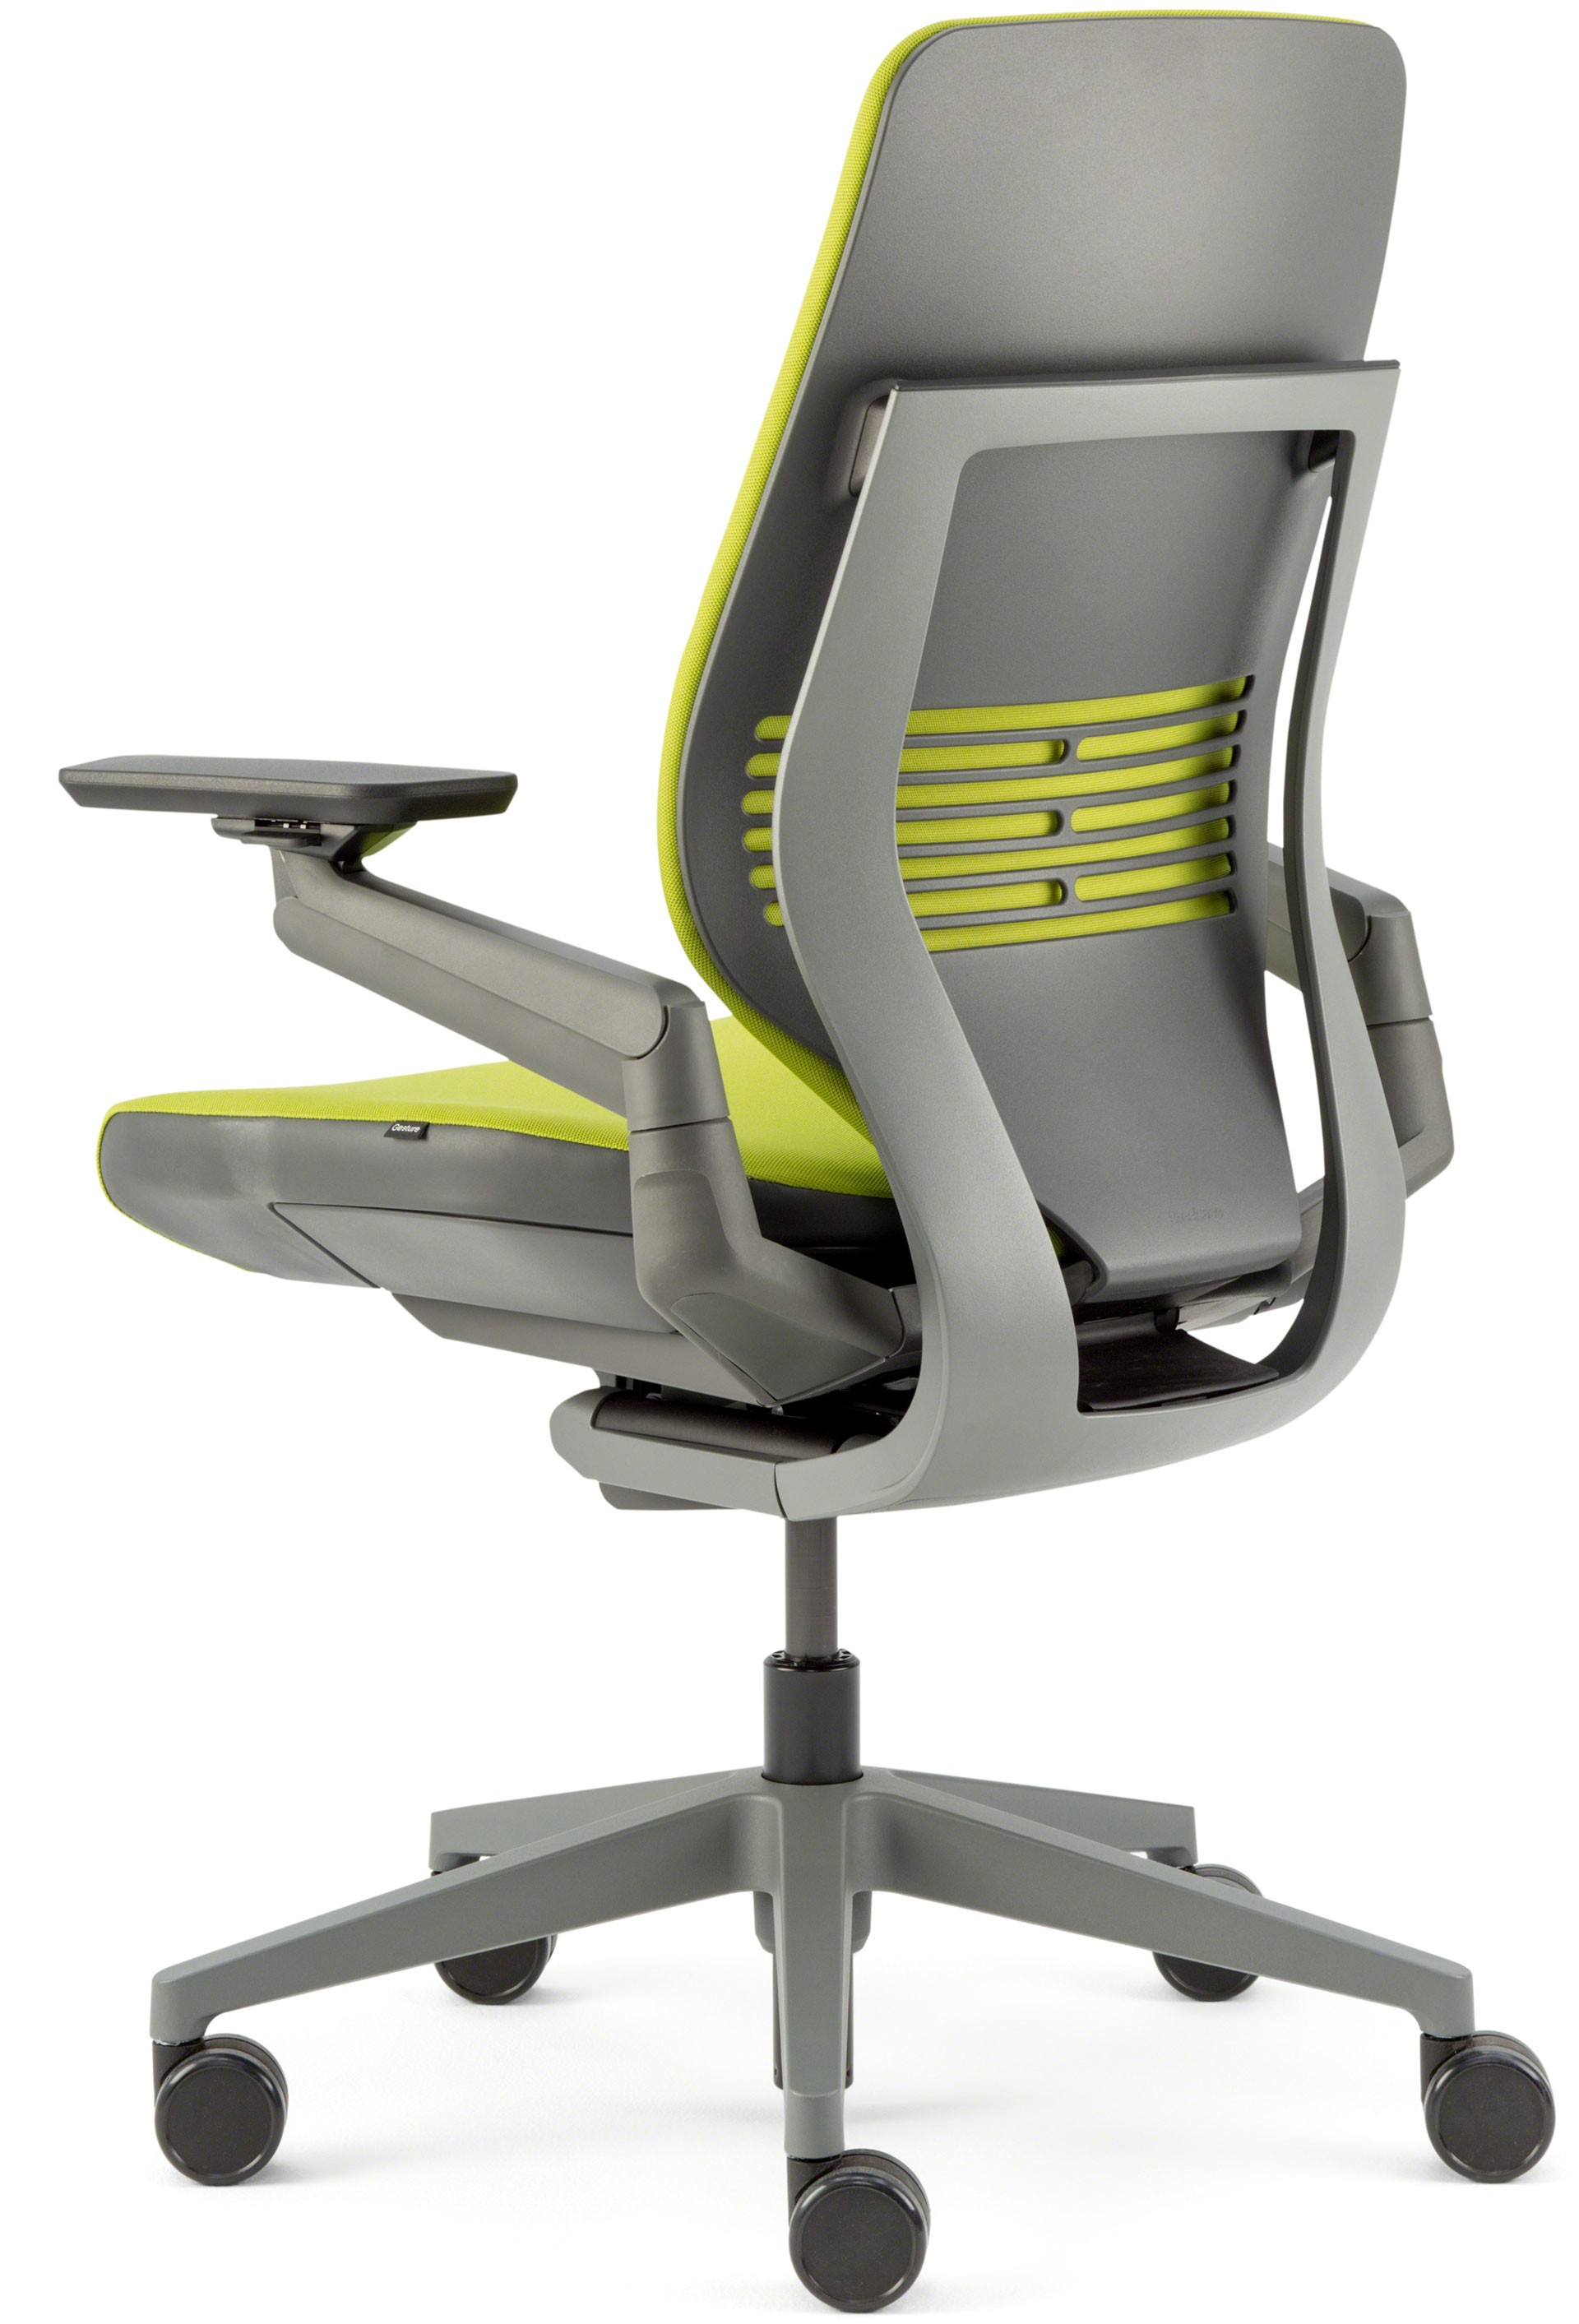 Best Office Chairs For Back Support >> Steelcase Gesture™ Office Chair